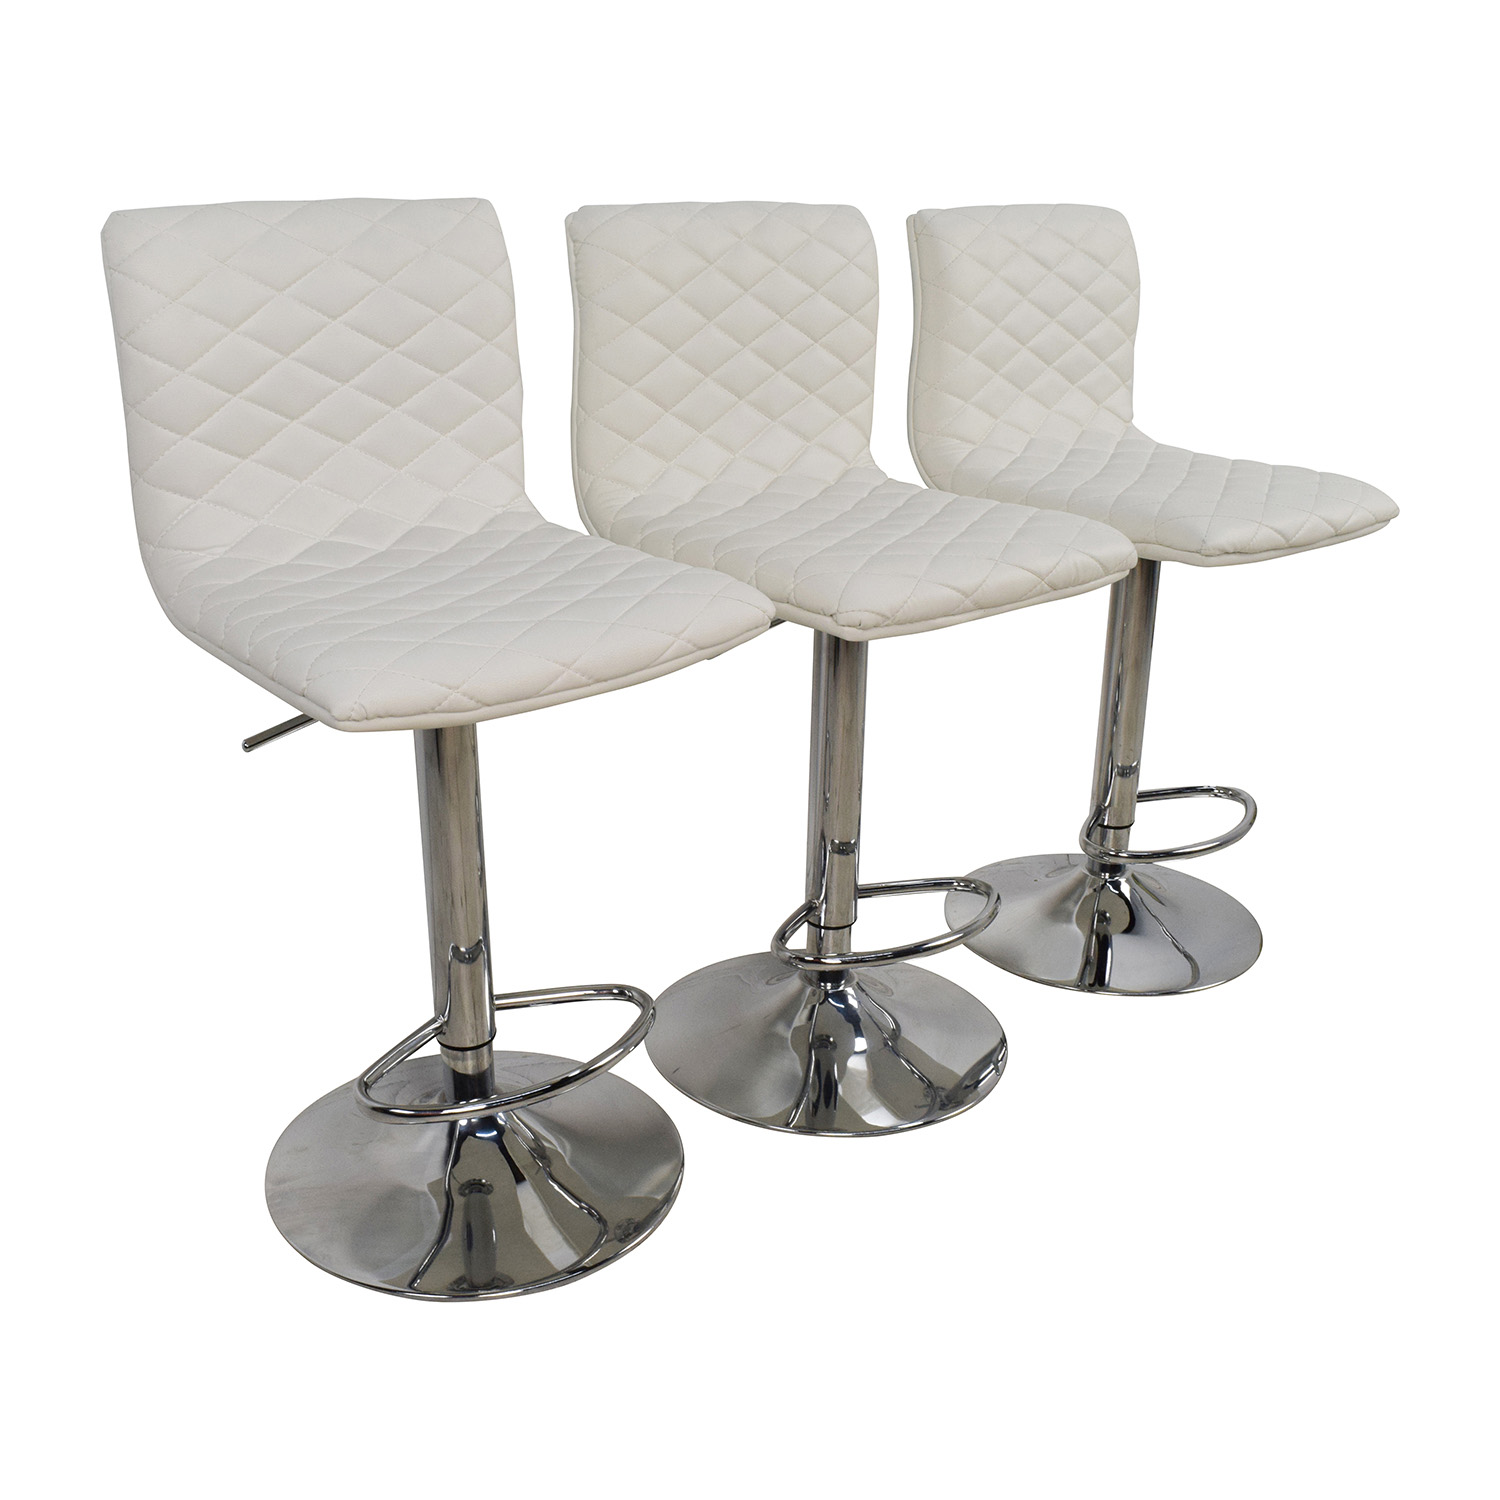 74 Off White Quilted Bar Stool Chairs Chairs